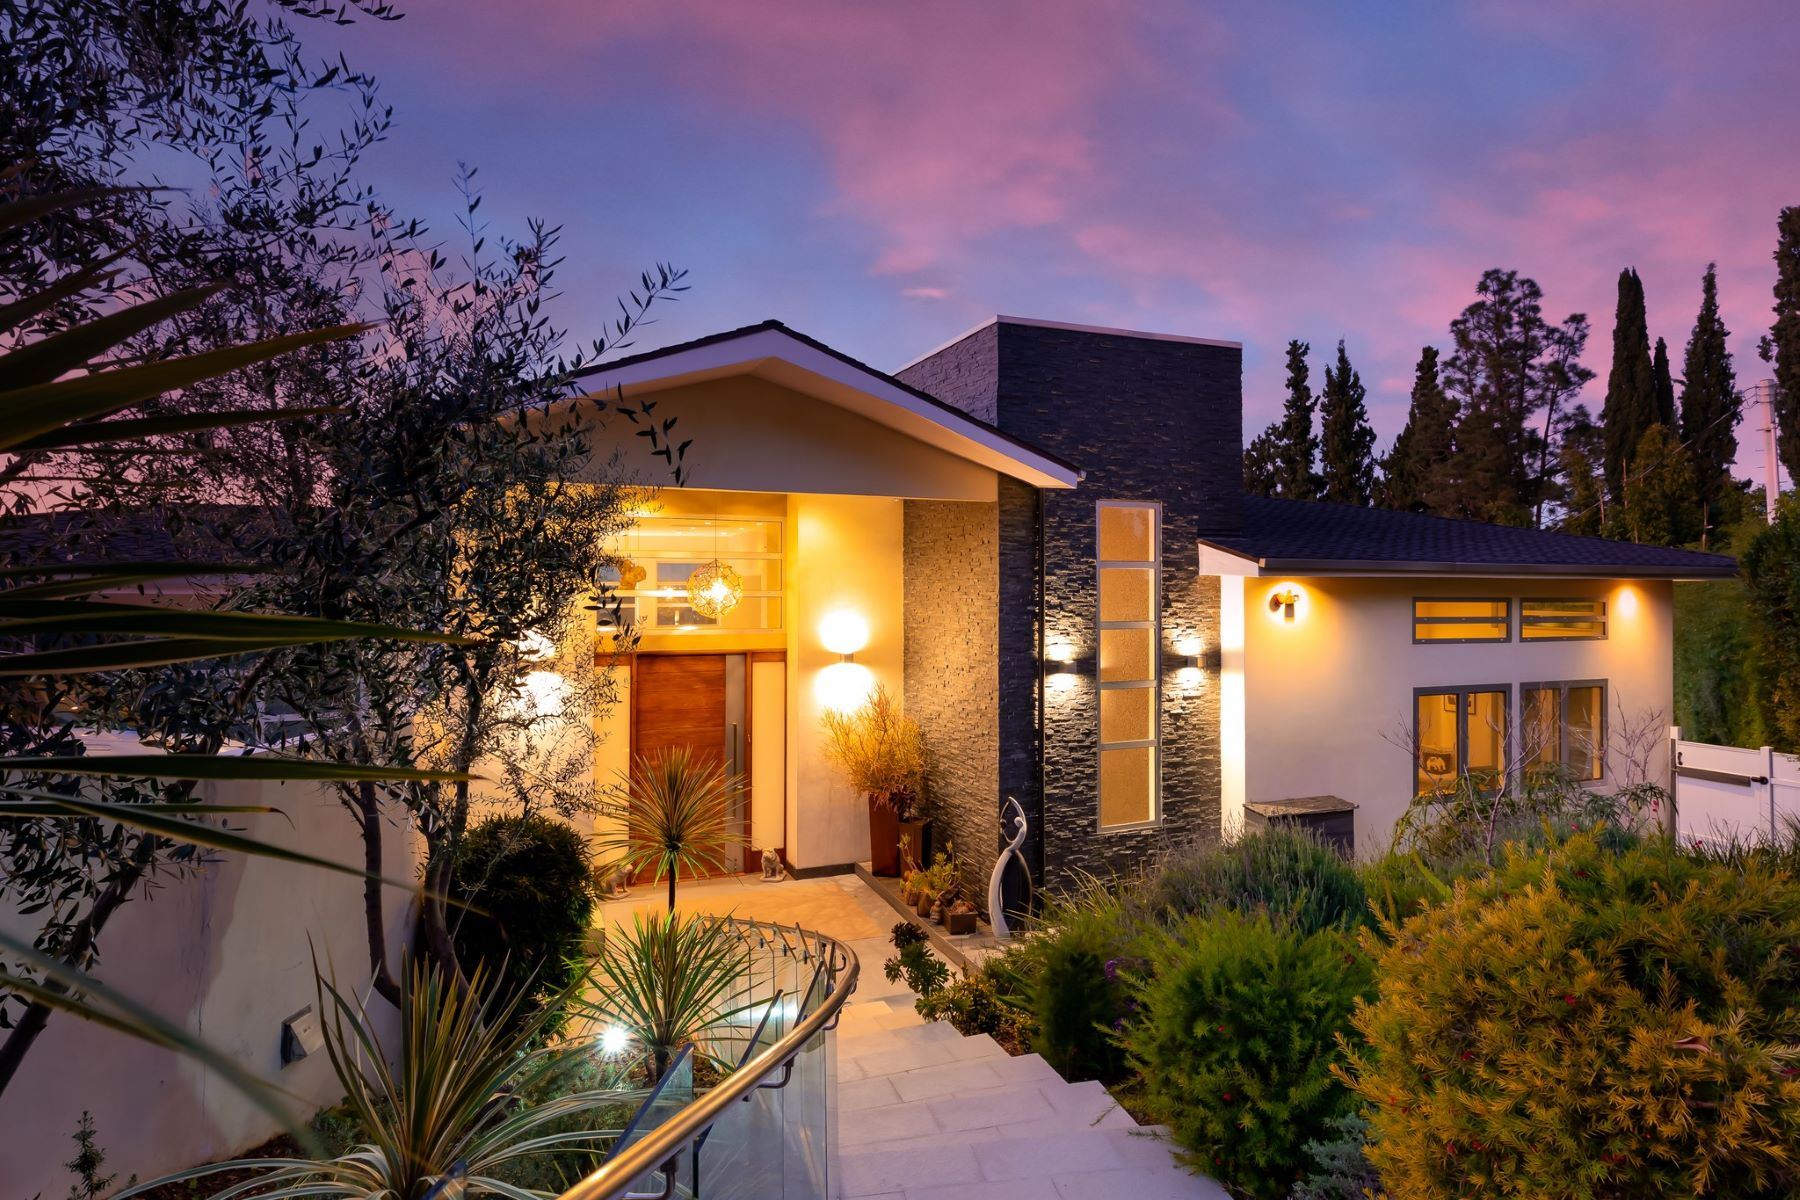 Single Family Homes for Sale at 3768 Berry Drive Studio City, California 91604 United States